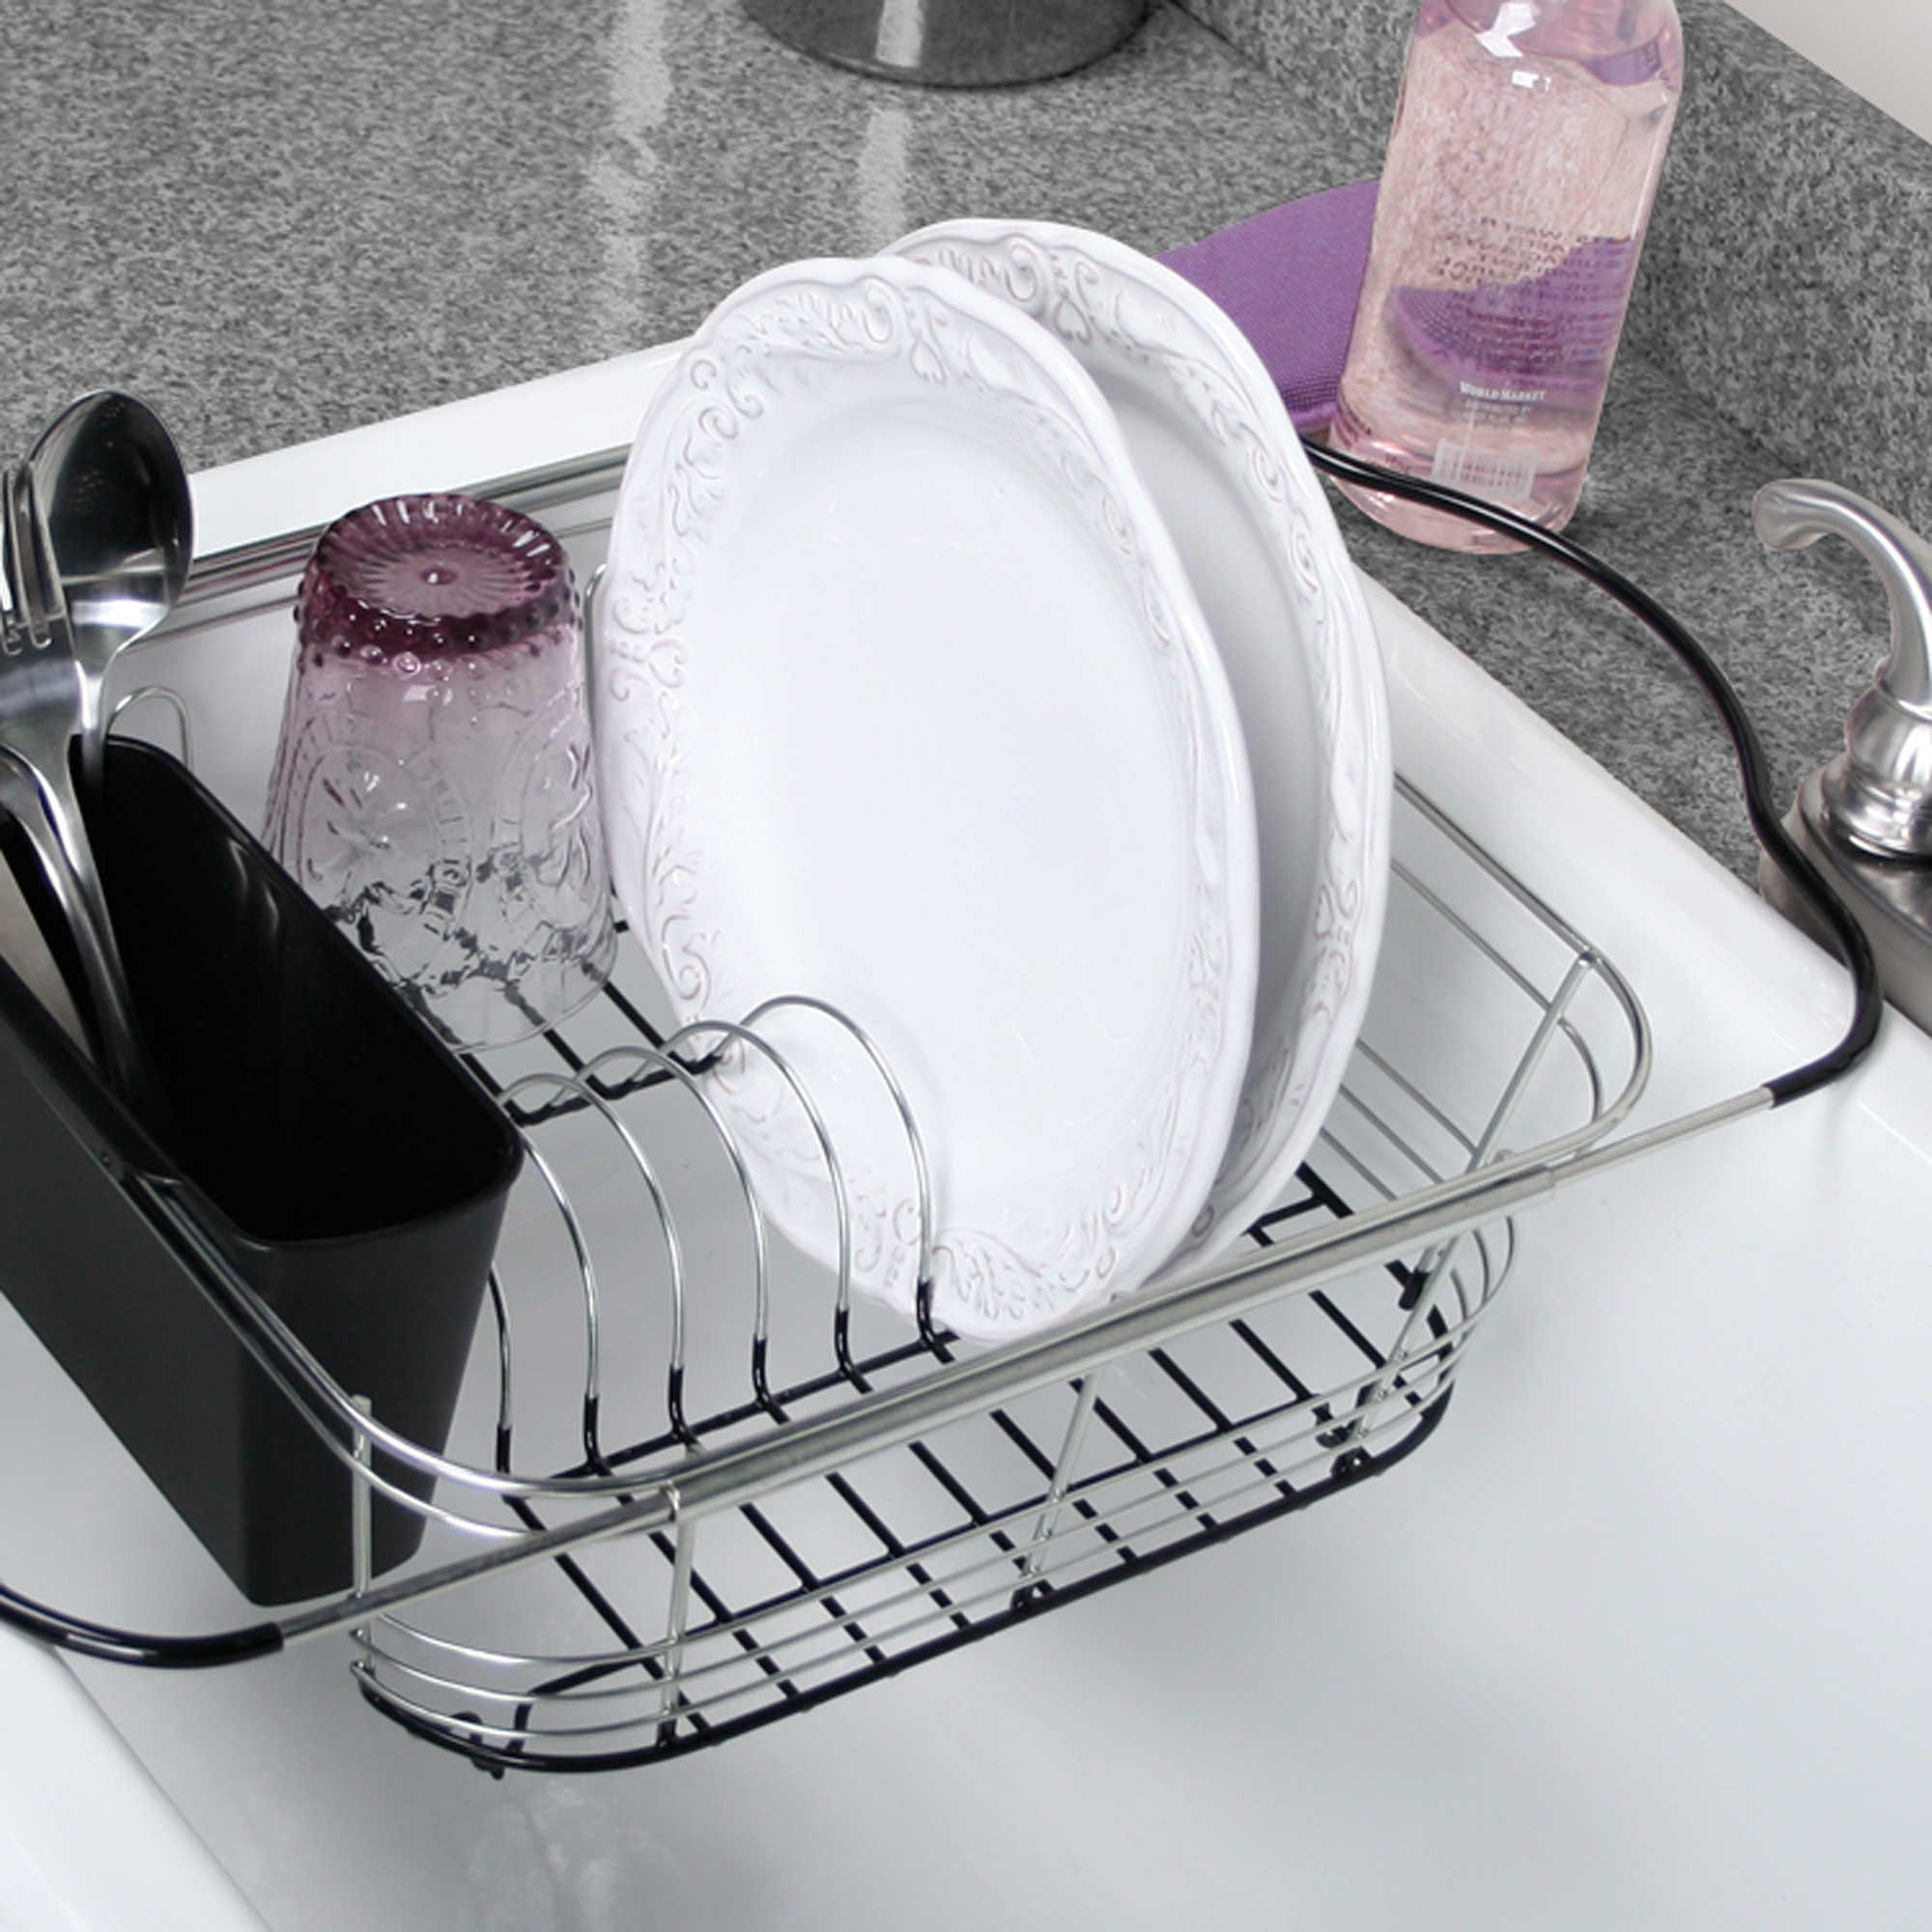 3 In 1 Expandable Dish Rack With Integrated Handles Dish Racks